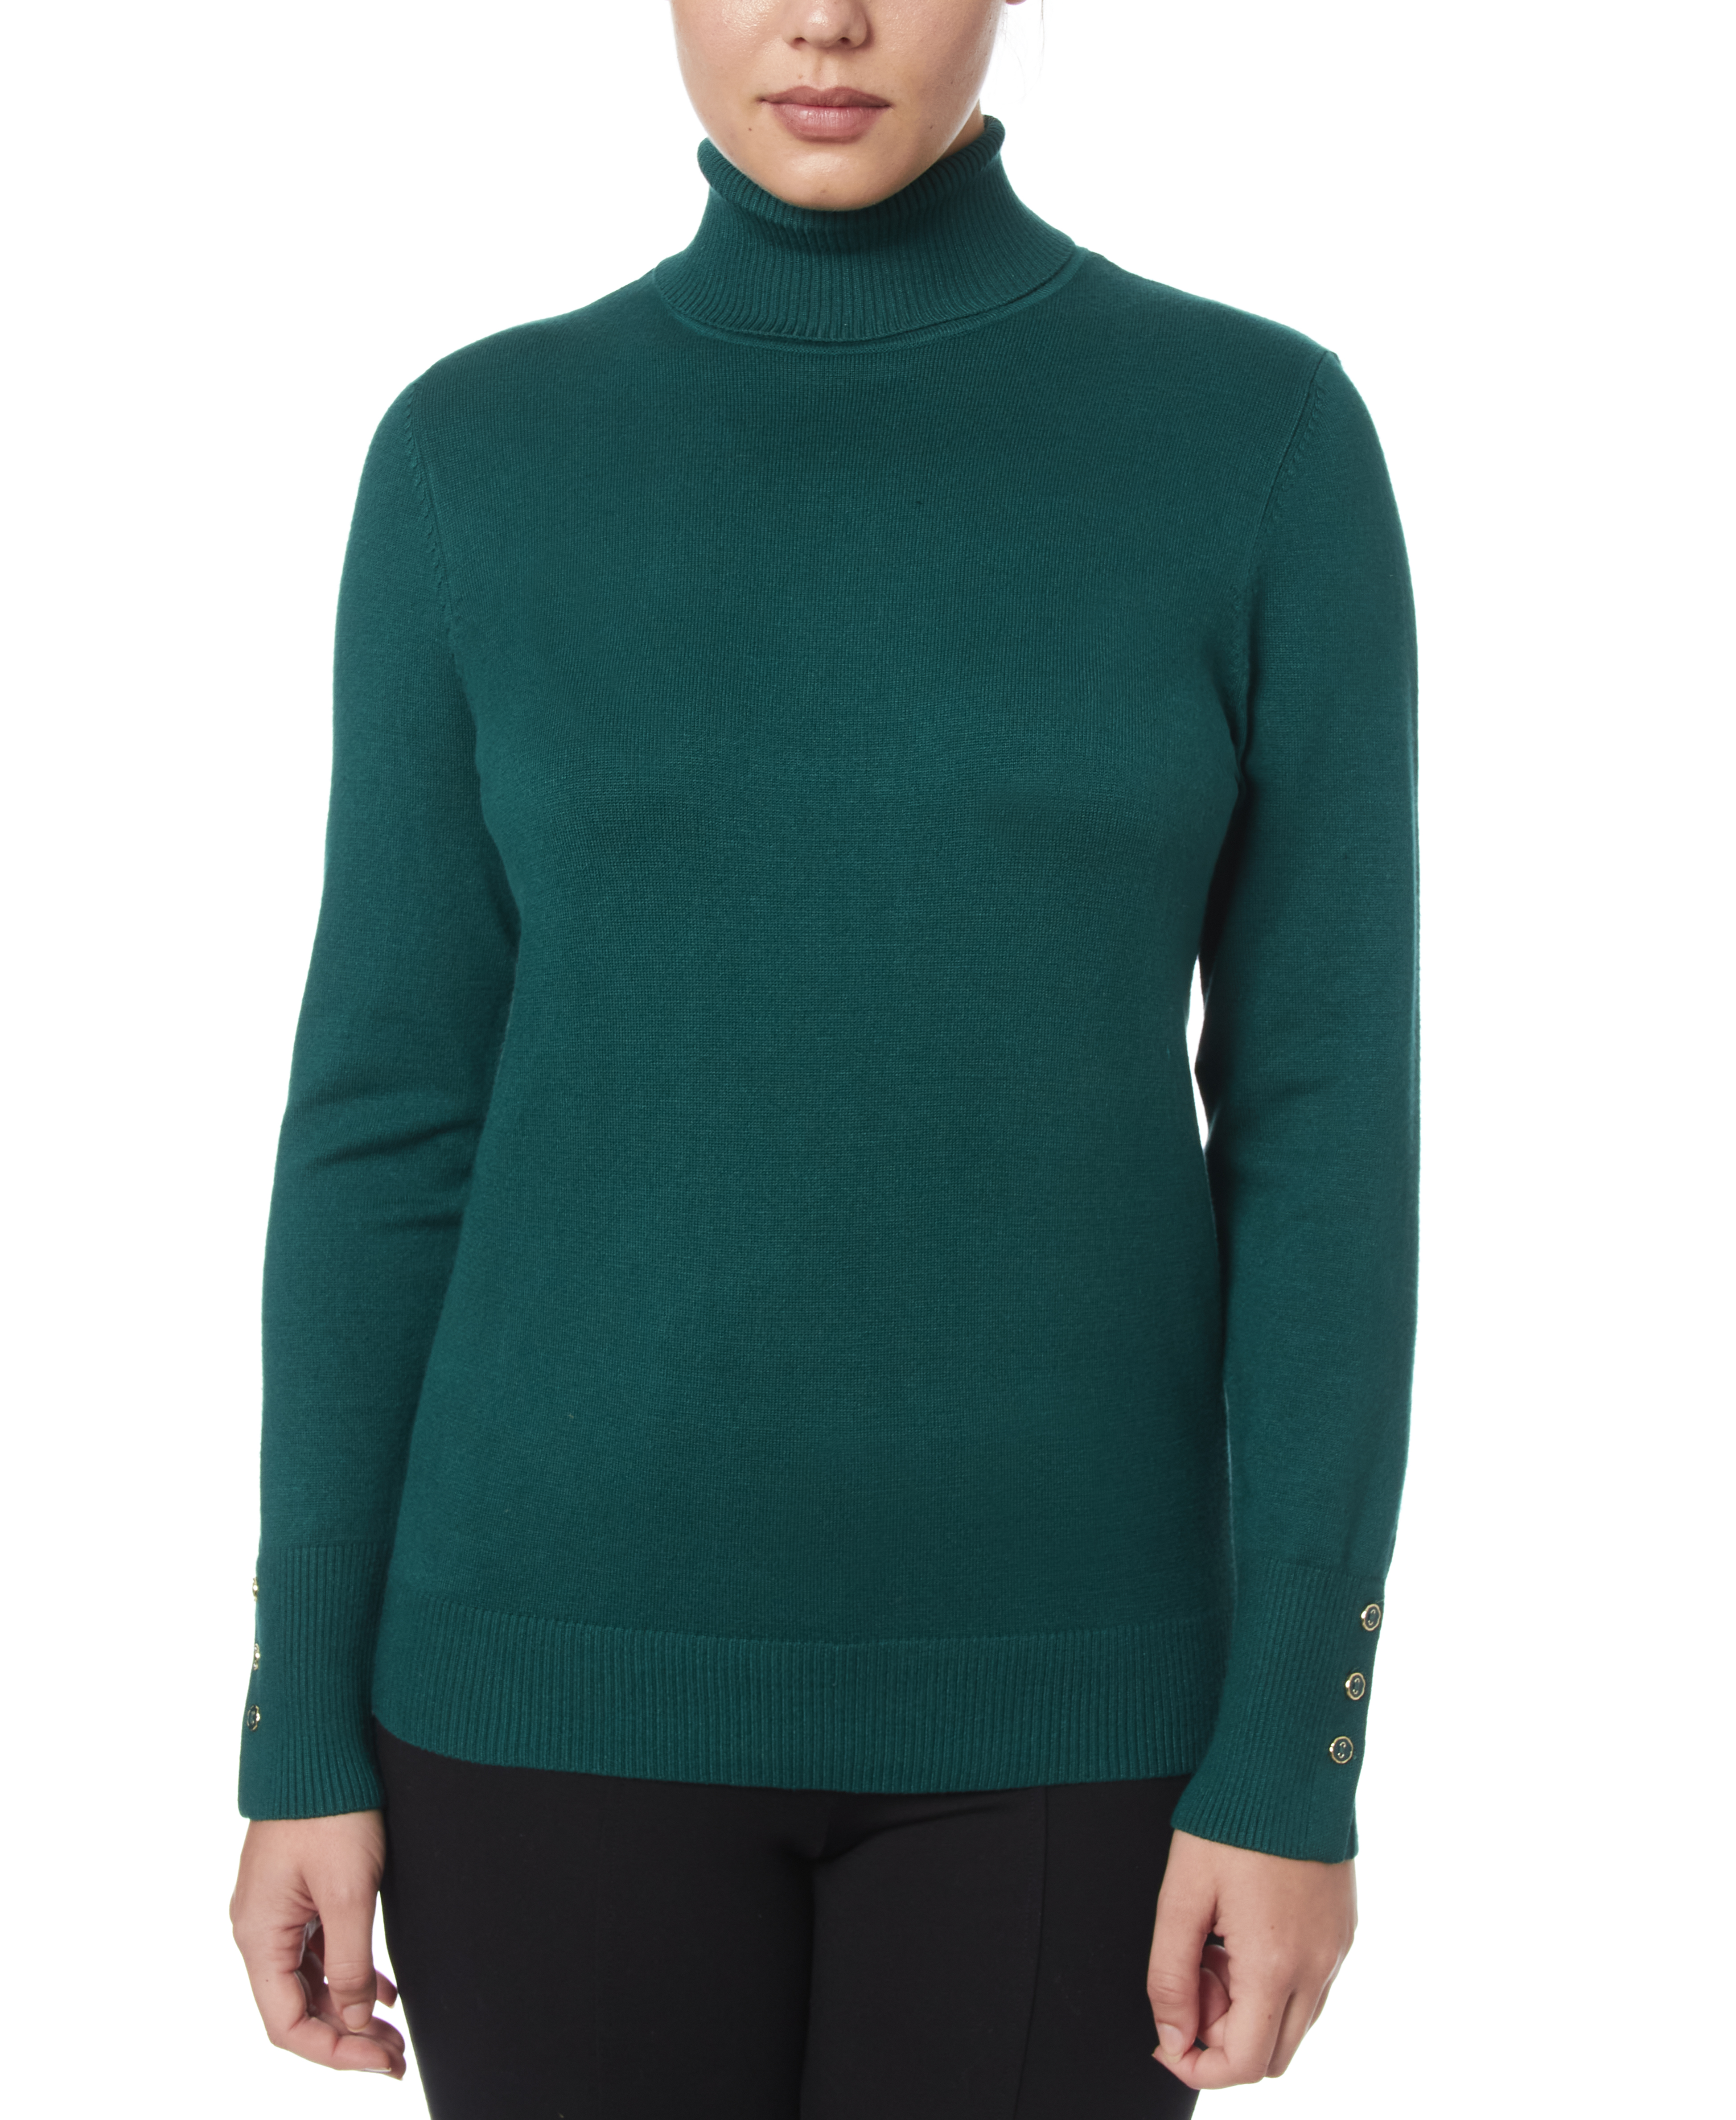 Solid Turtleneck with Button Cuff in Botanic